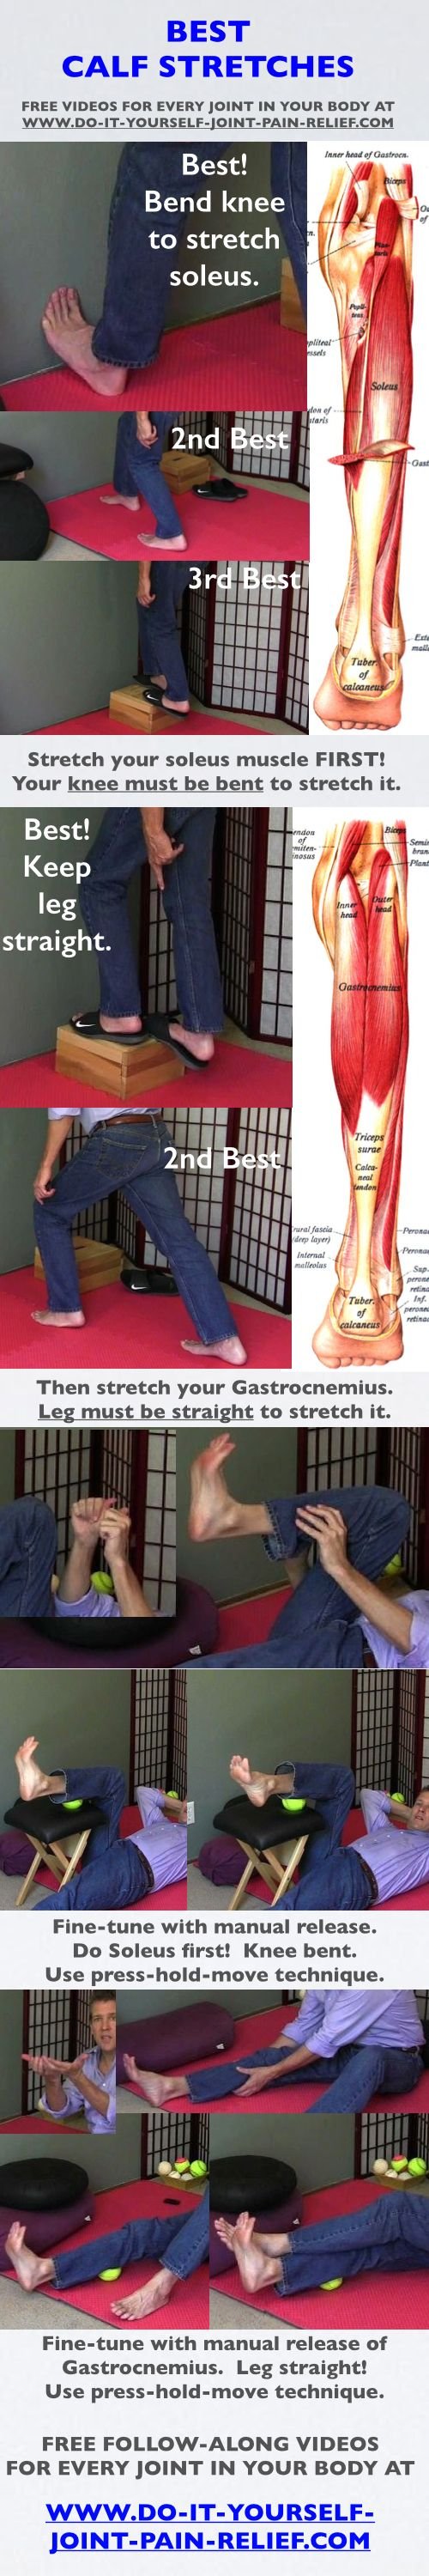 "Best Calf Stretches -   Free follow-along videos and  free pain relief ""Cheat Sheet""..."